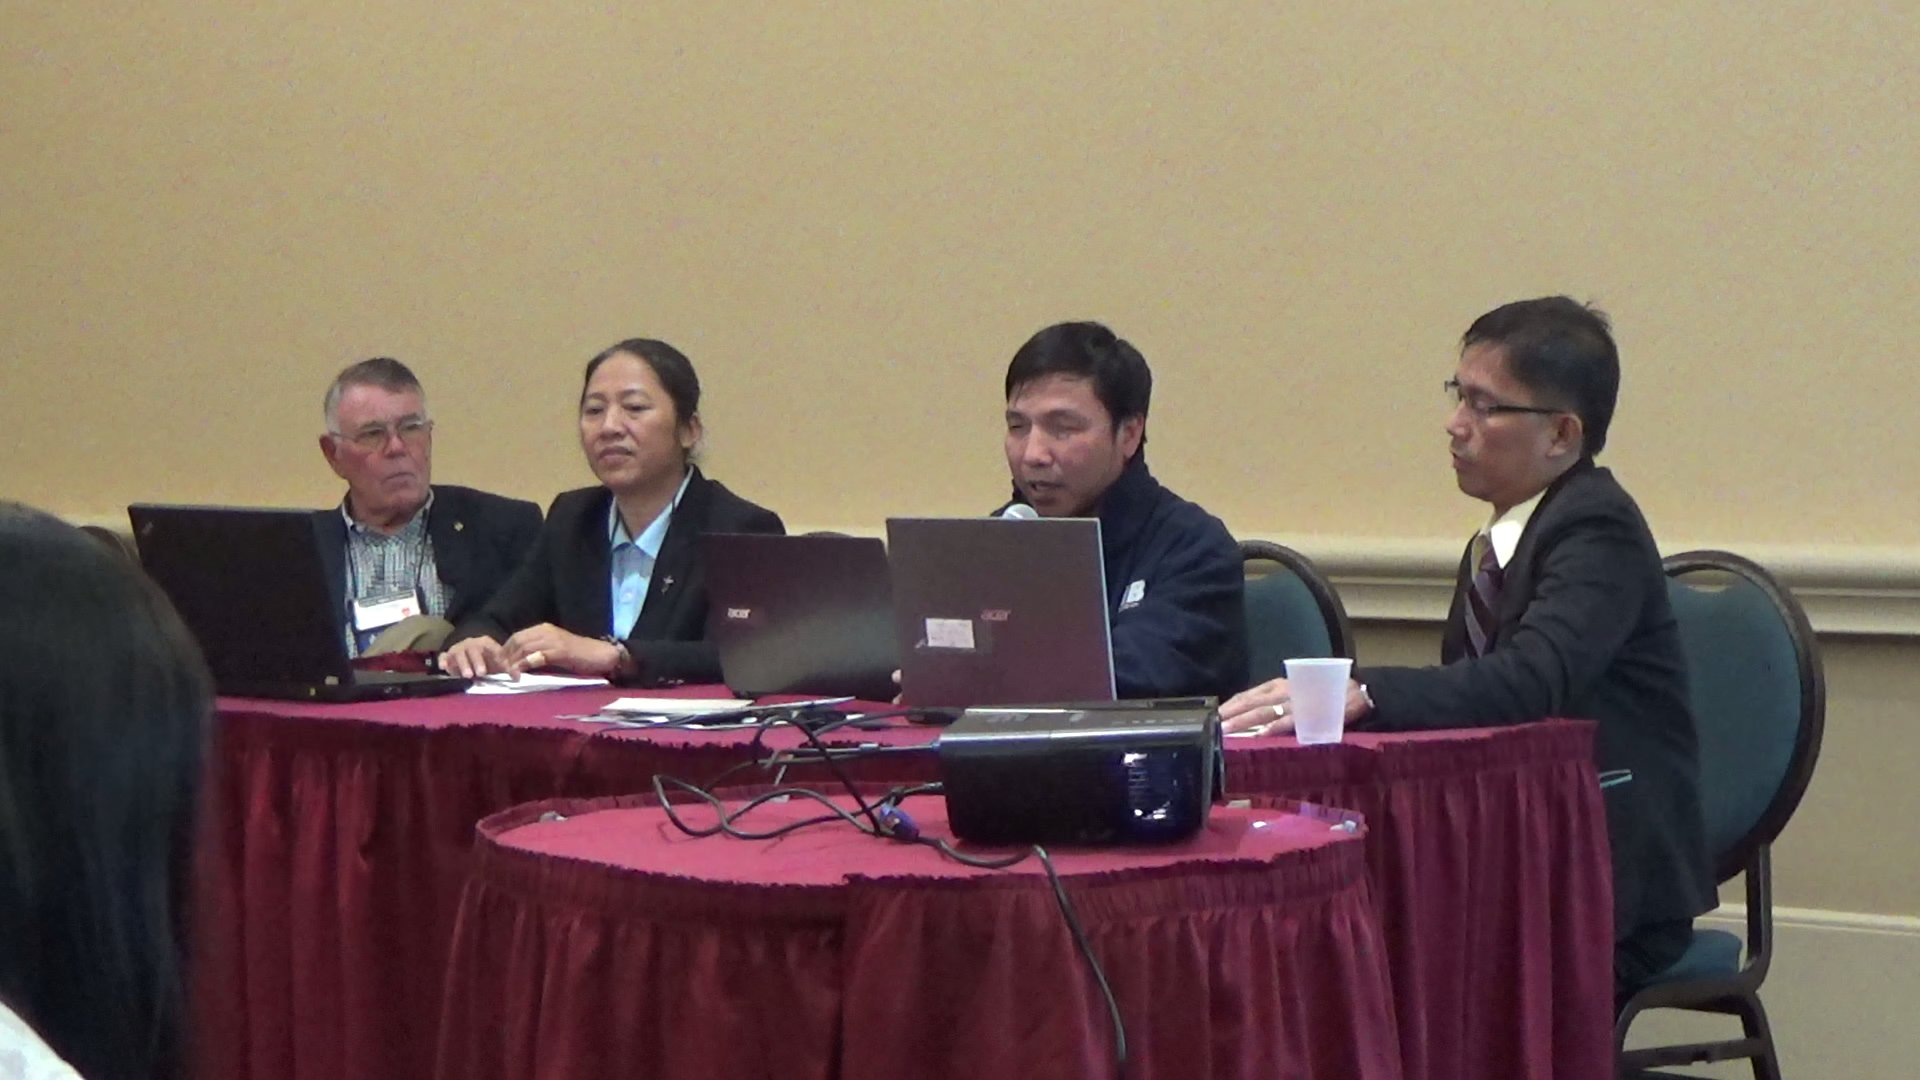 Phuc making presentation with the group of other country coordinators in Orlando